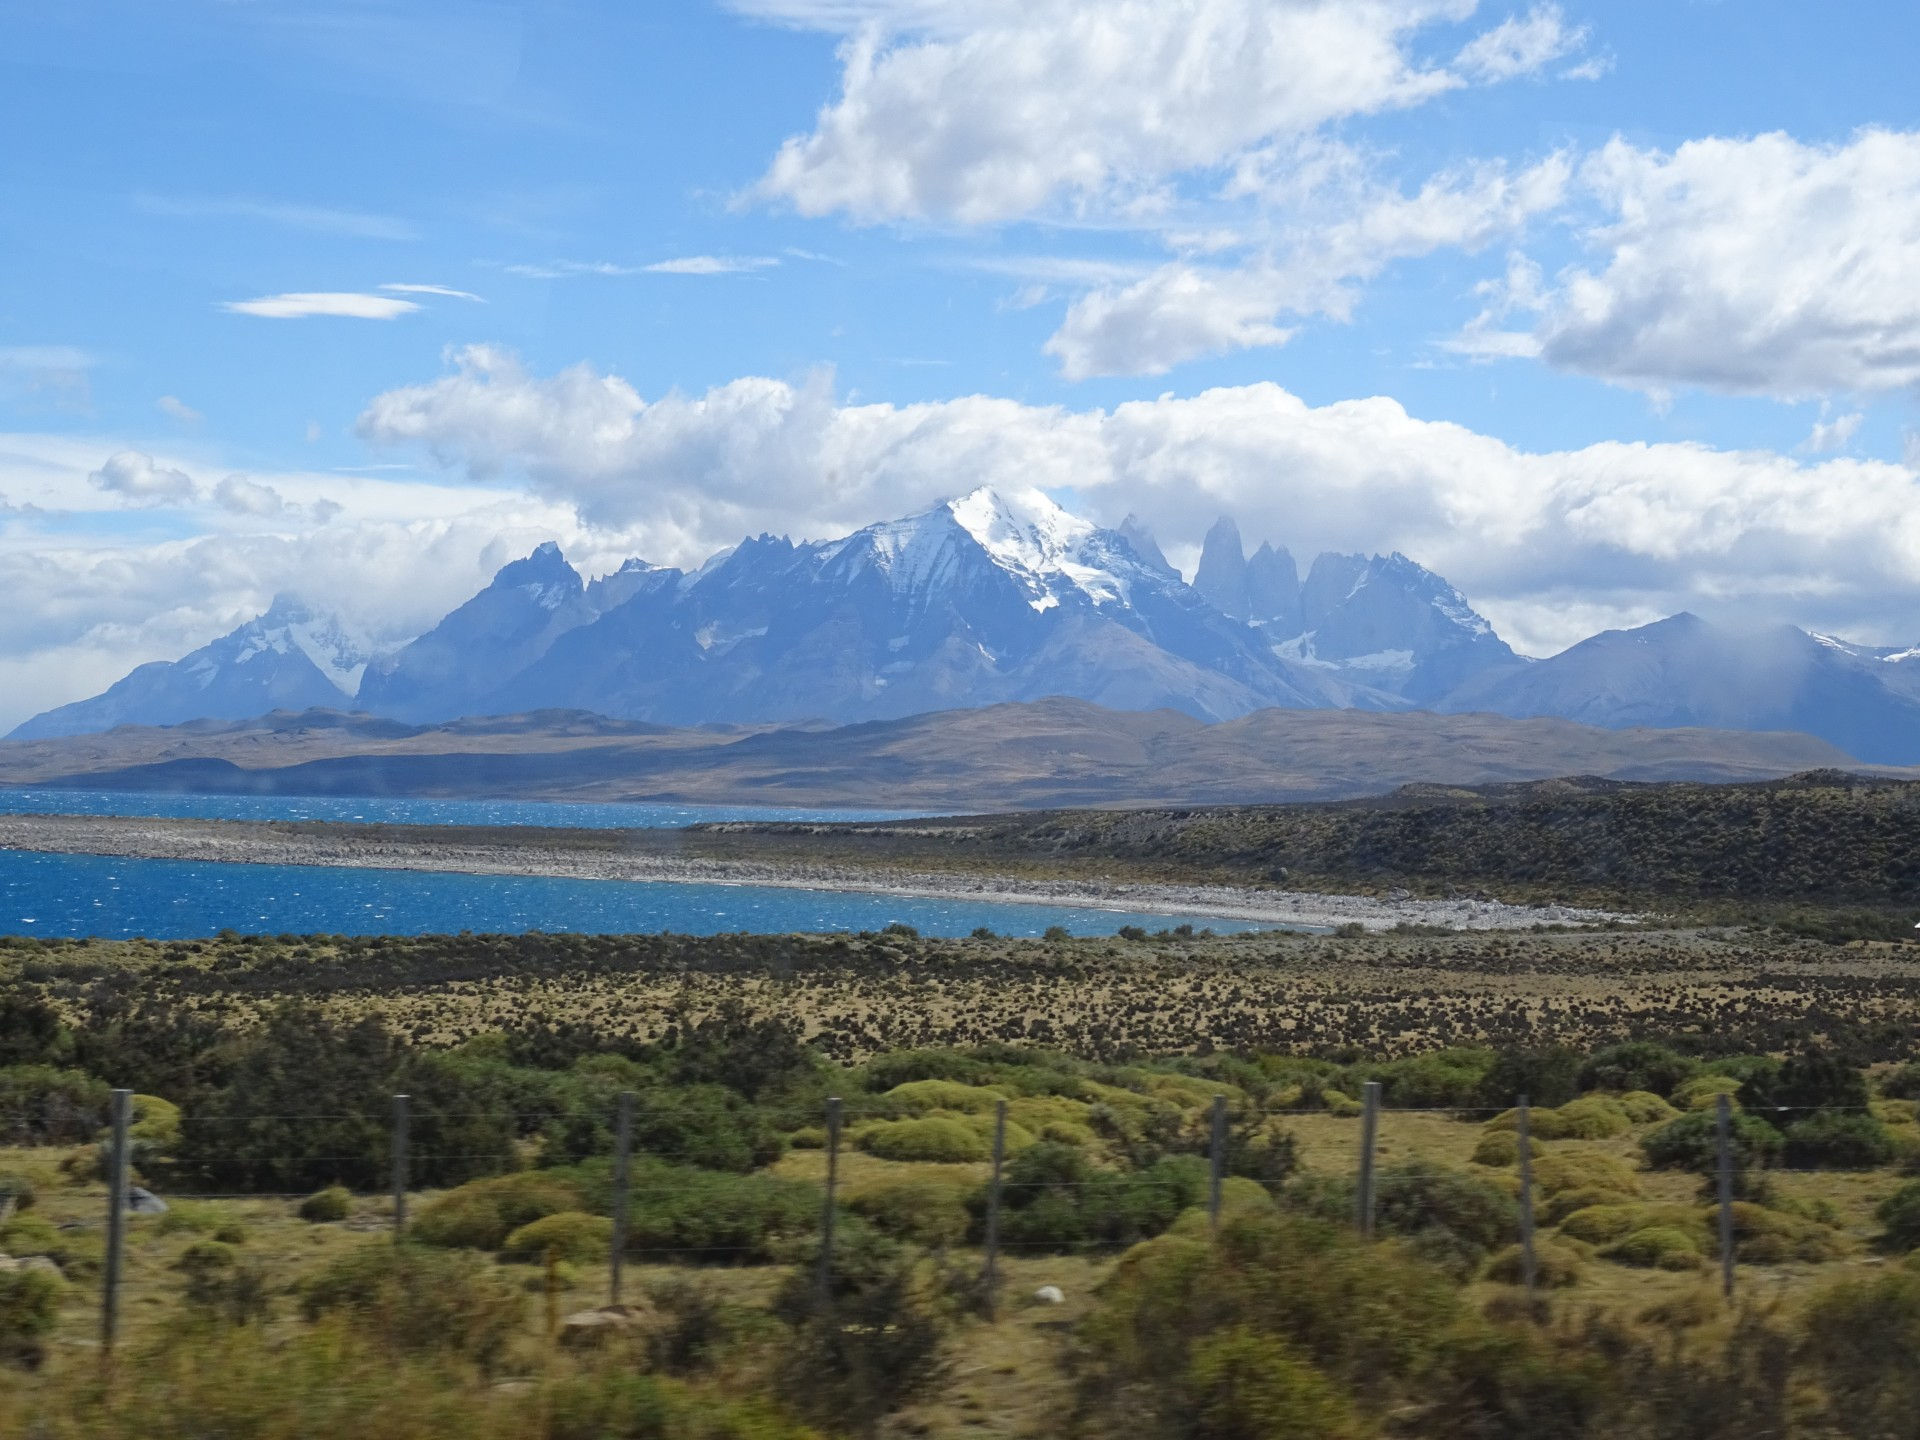 The Torres del Paine. On the way back when we could actually see through the windows.